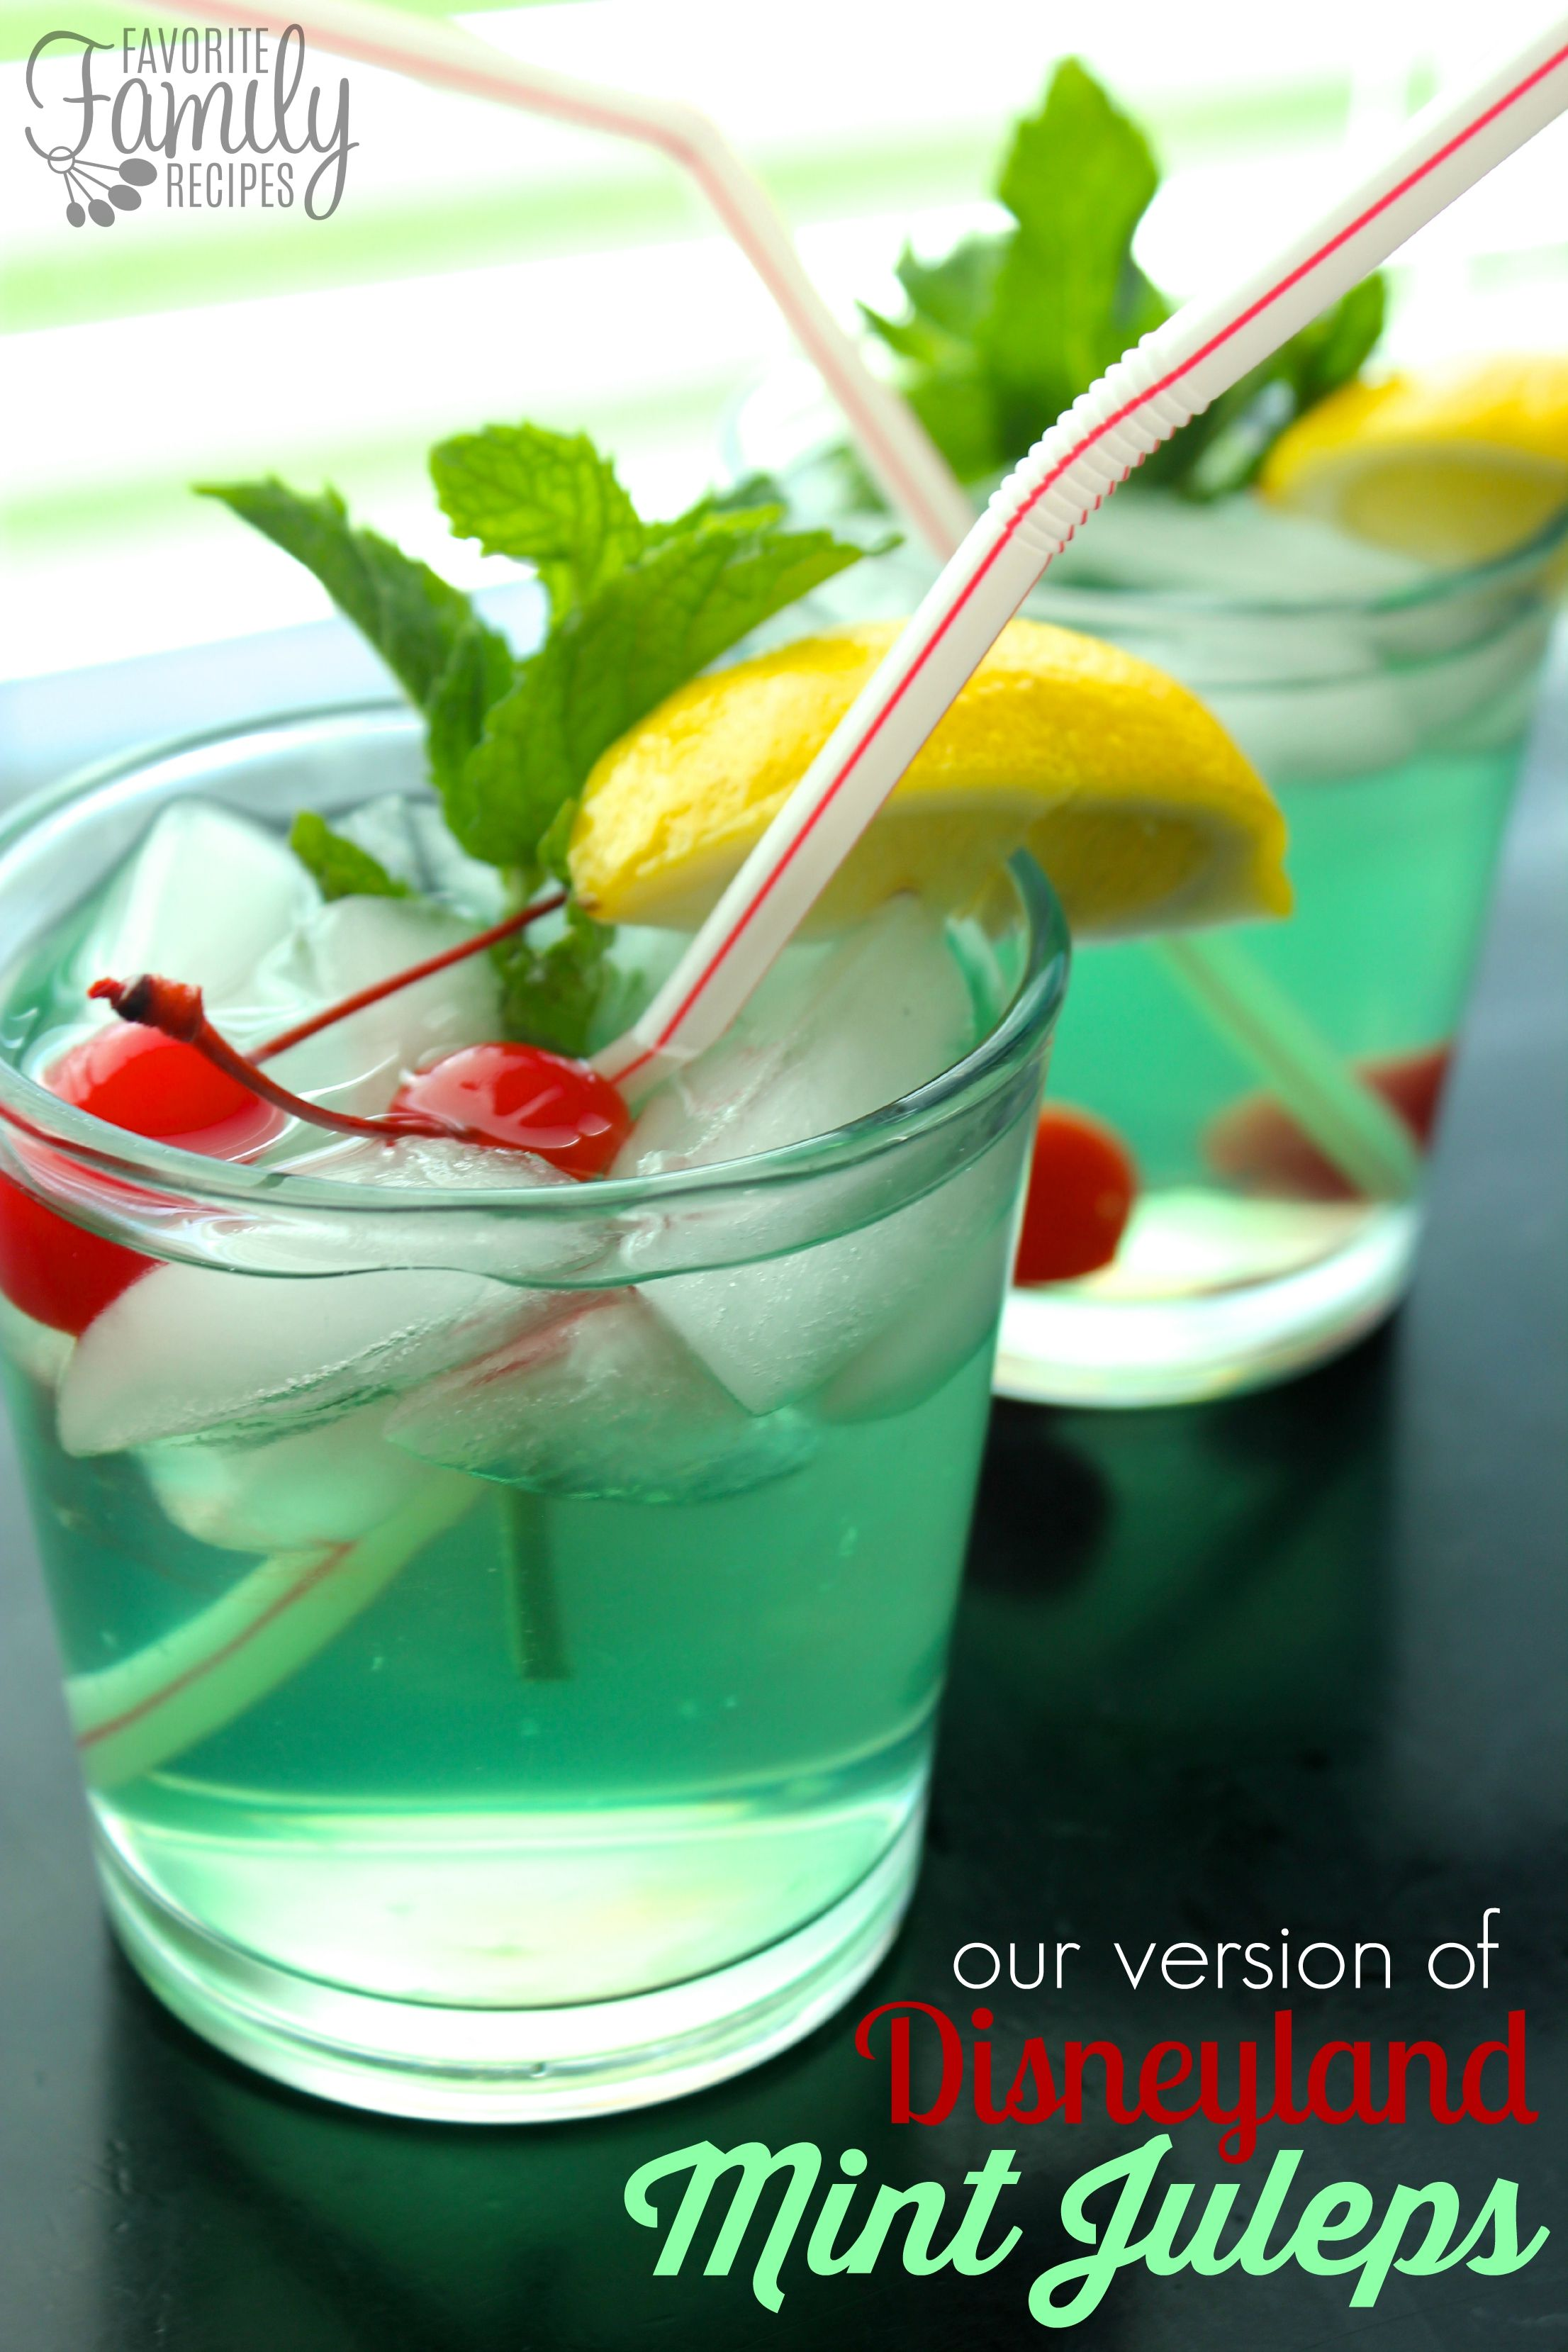 Mint Juleps are one of my favorite things to get at Disneyland. They are perfect for a hot summer day with a little bit of mint, lemon, and lime flavors.